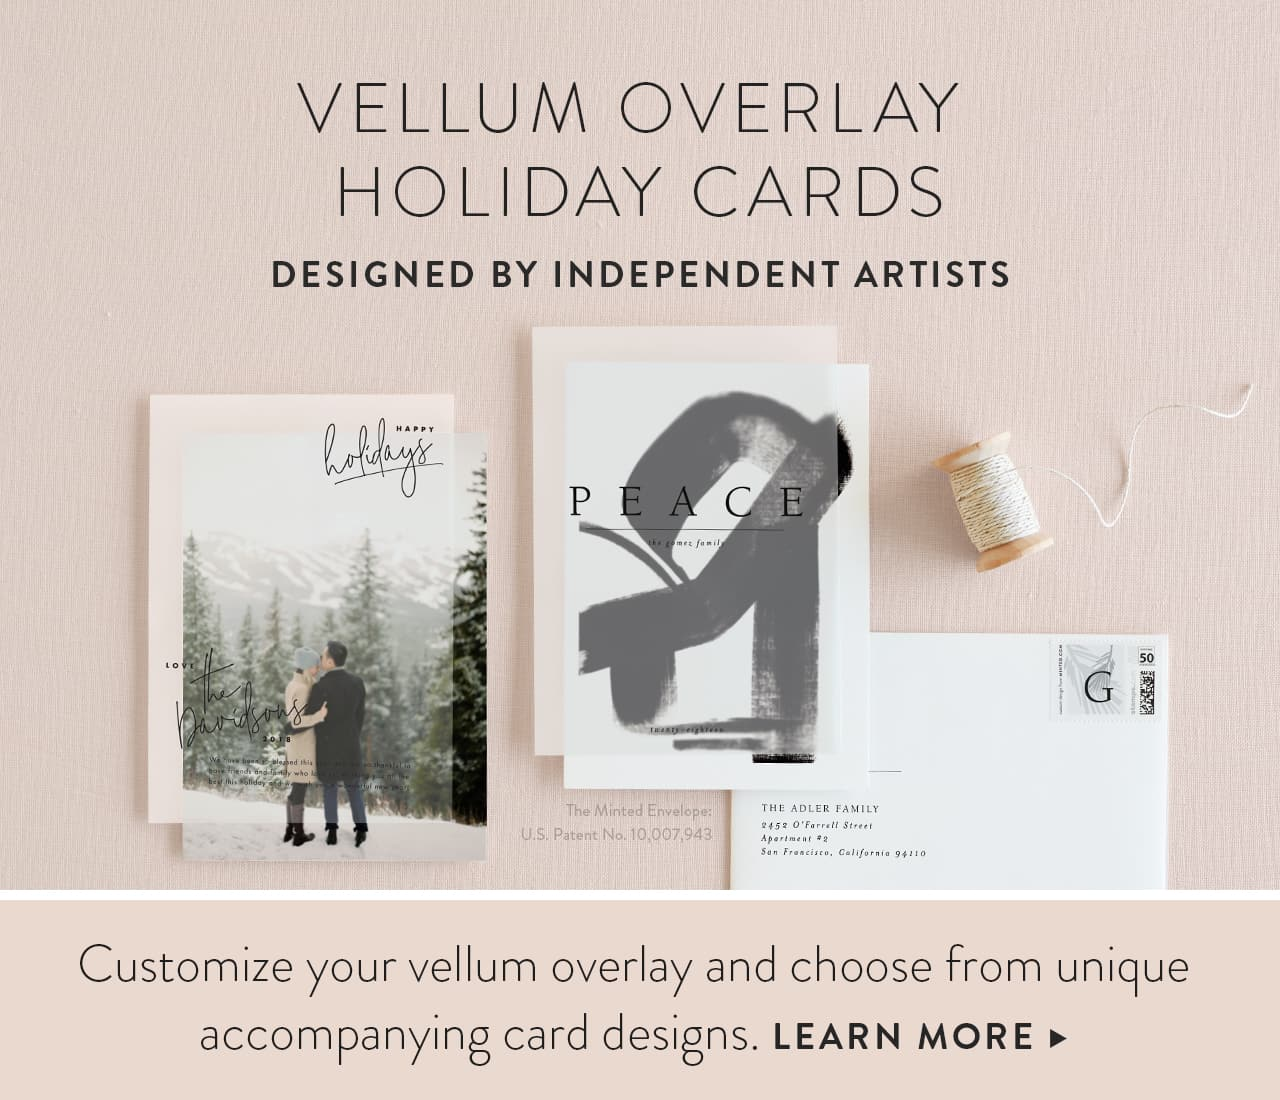 Vellum Holiday Cards